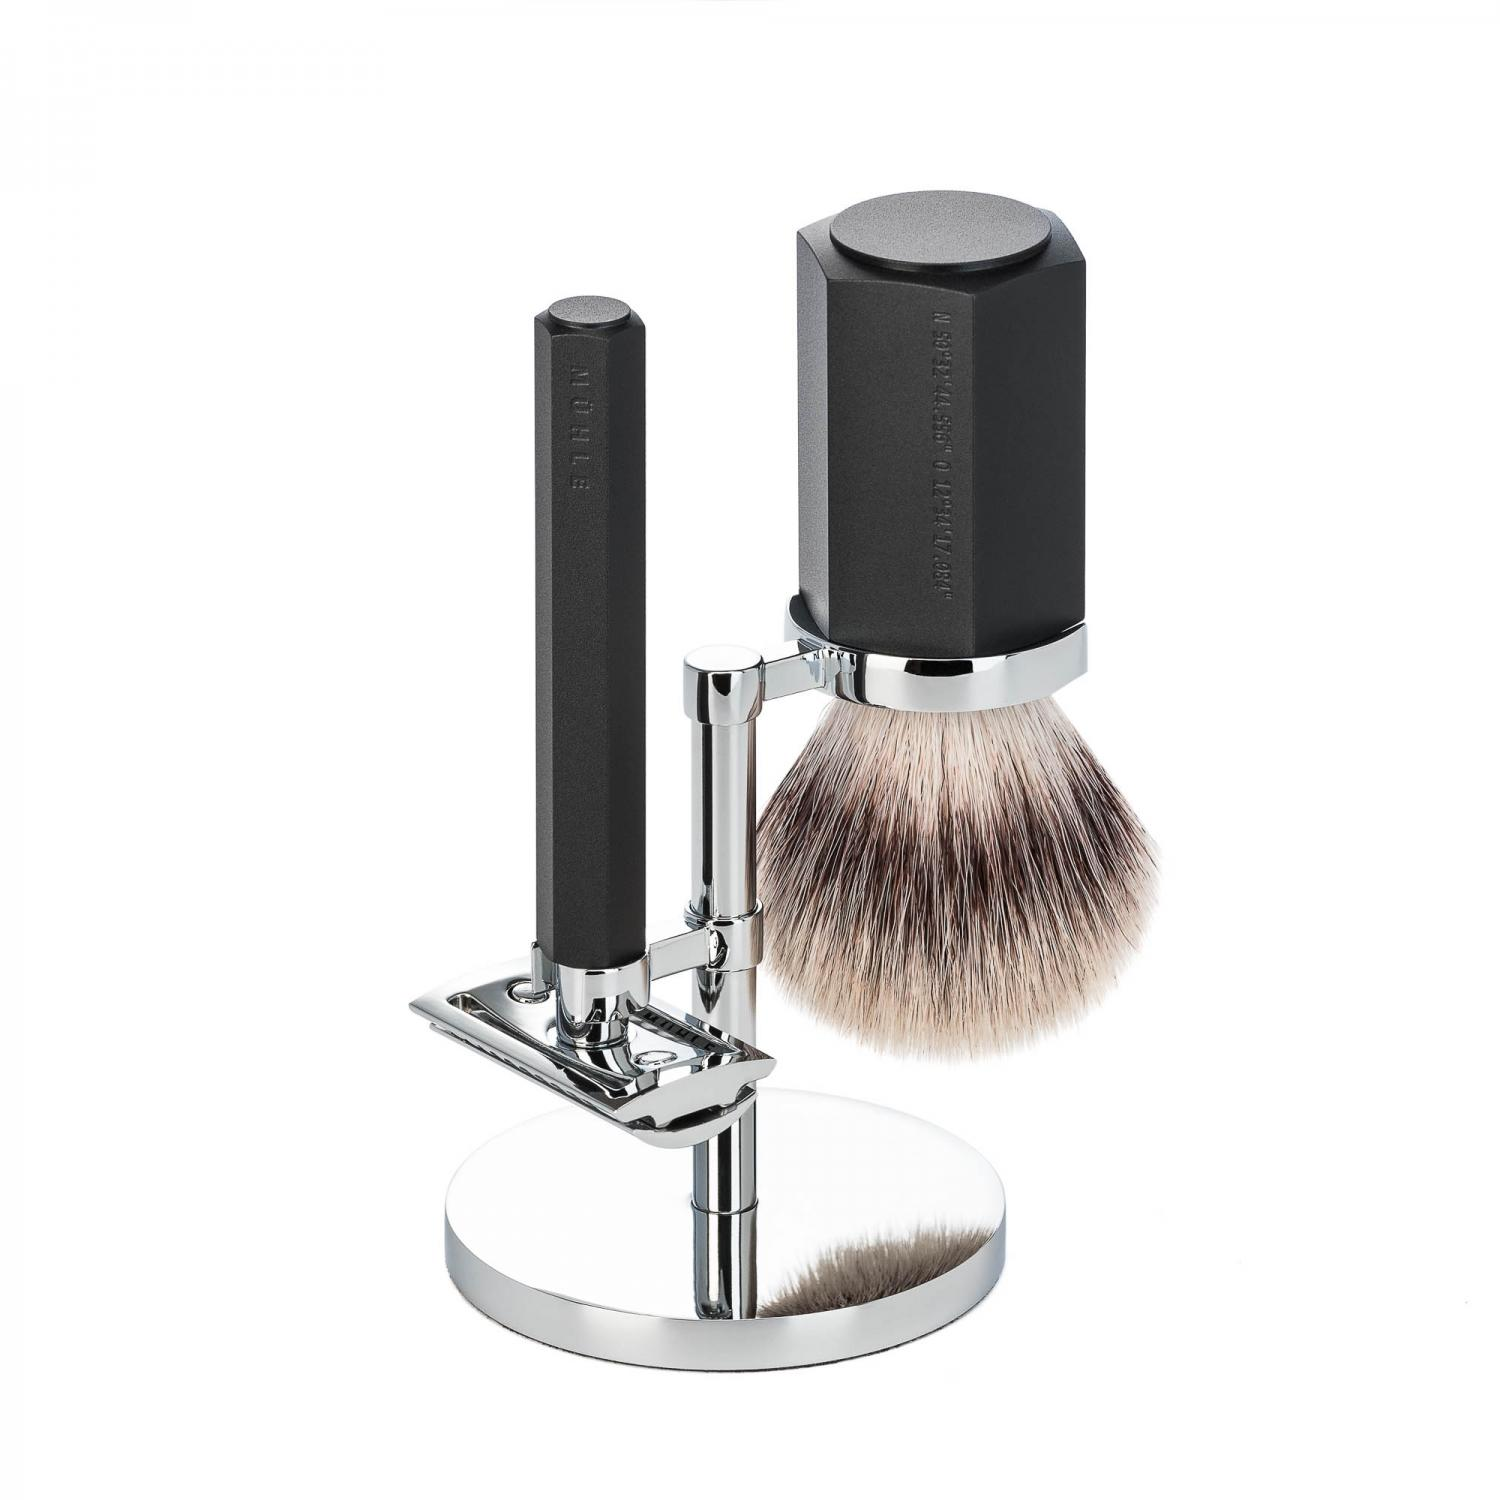 Muhle Graphite Hexagon shaving set